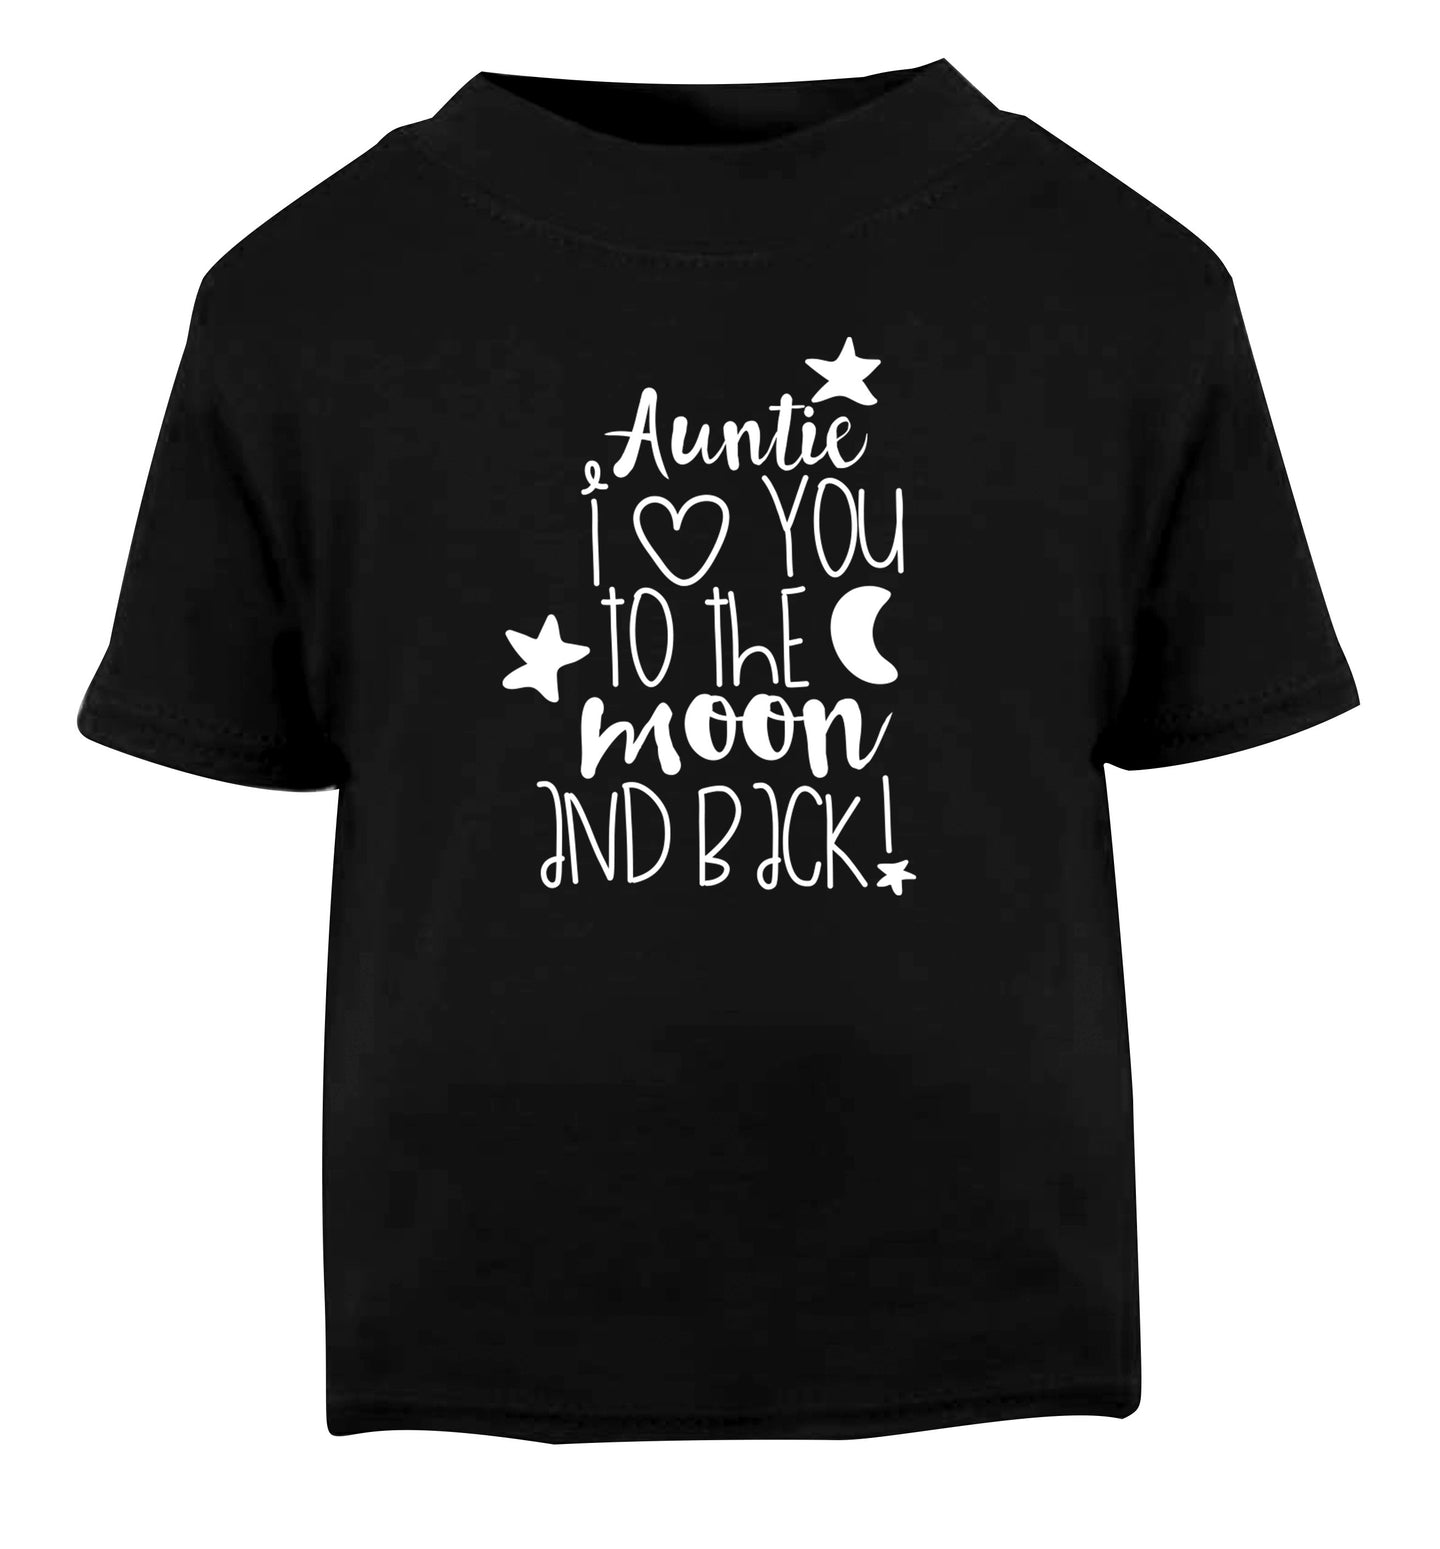 Auntie I love you to the moon and back Black Baby Toddler Tshirt 2 years